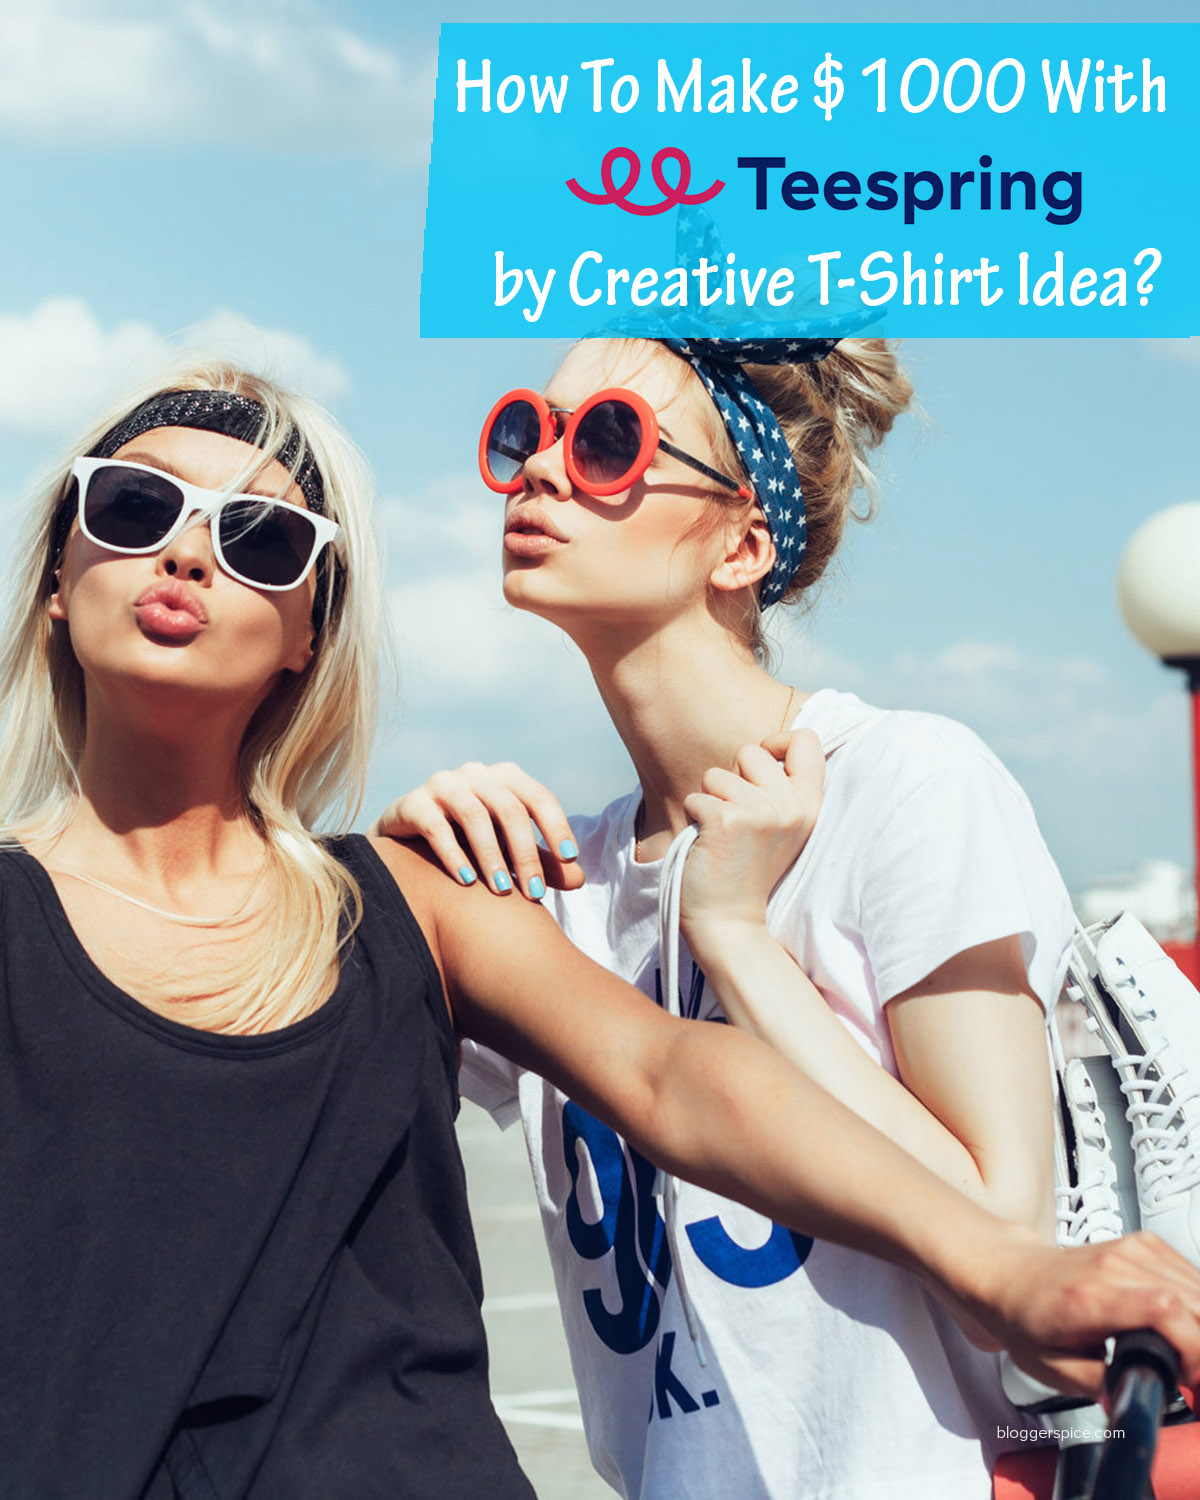 How To Make $1000 With Teespring by Creative T-Shirt Idea?